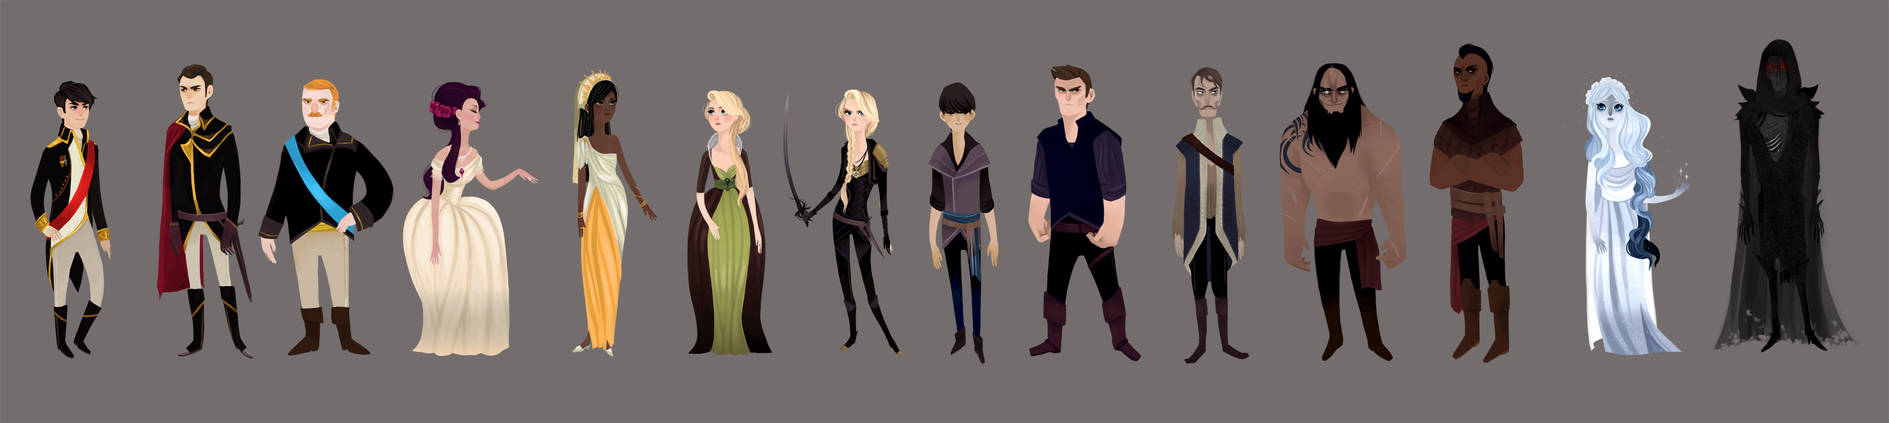 Throne of Glass Character Line Up